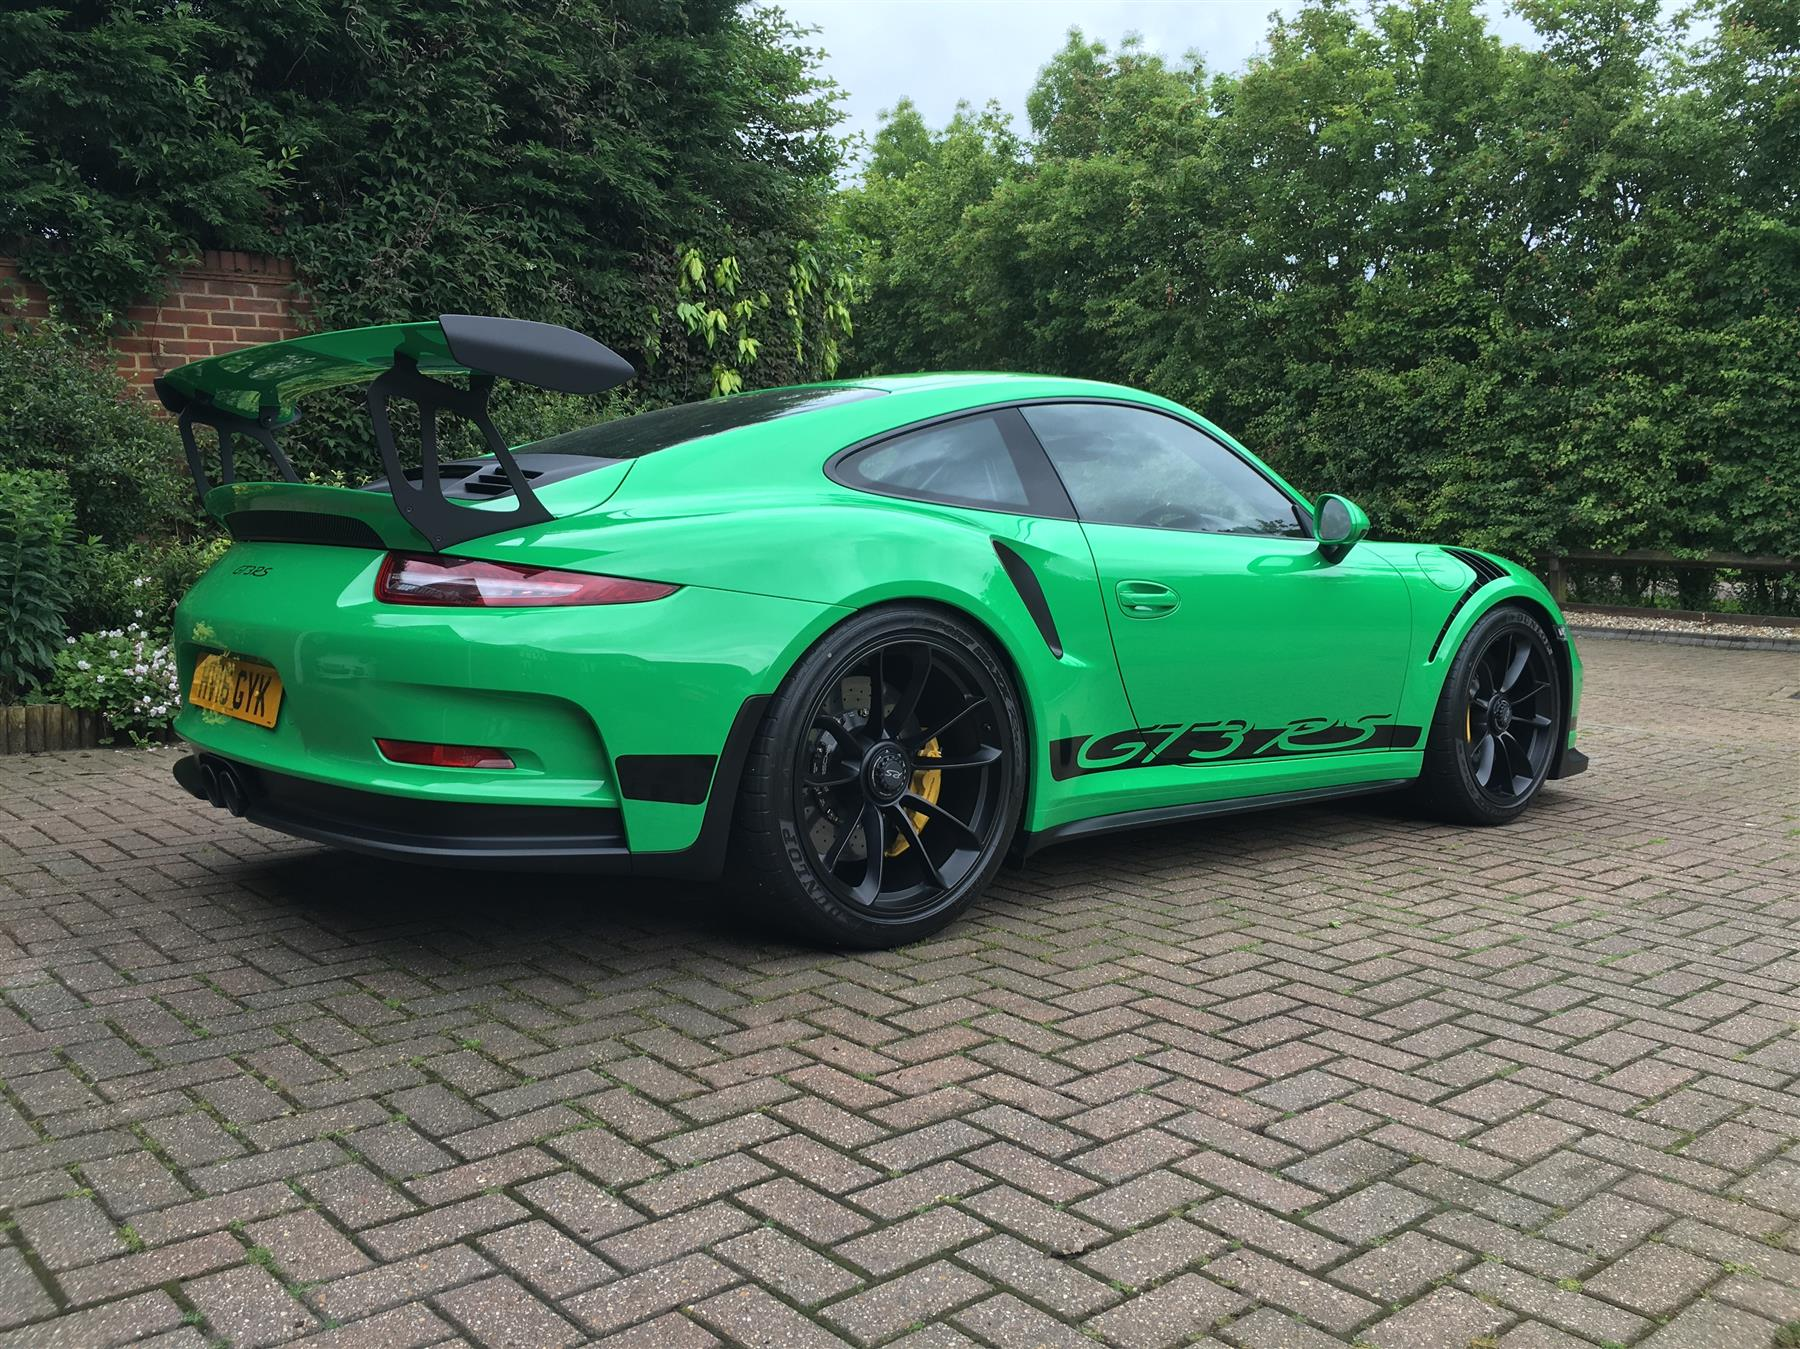 2016 Rs Green Porsche 911 Gt3 Rs For Sale At 321 000 In